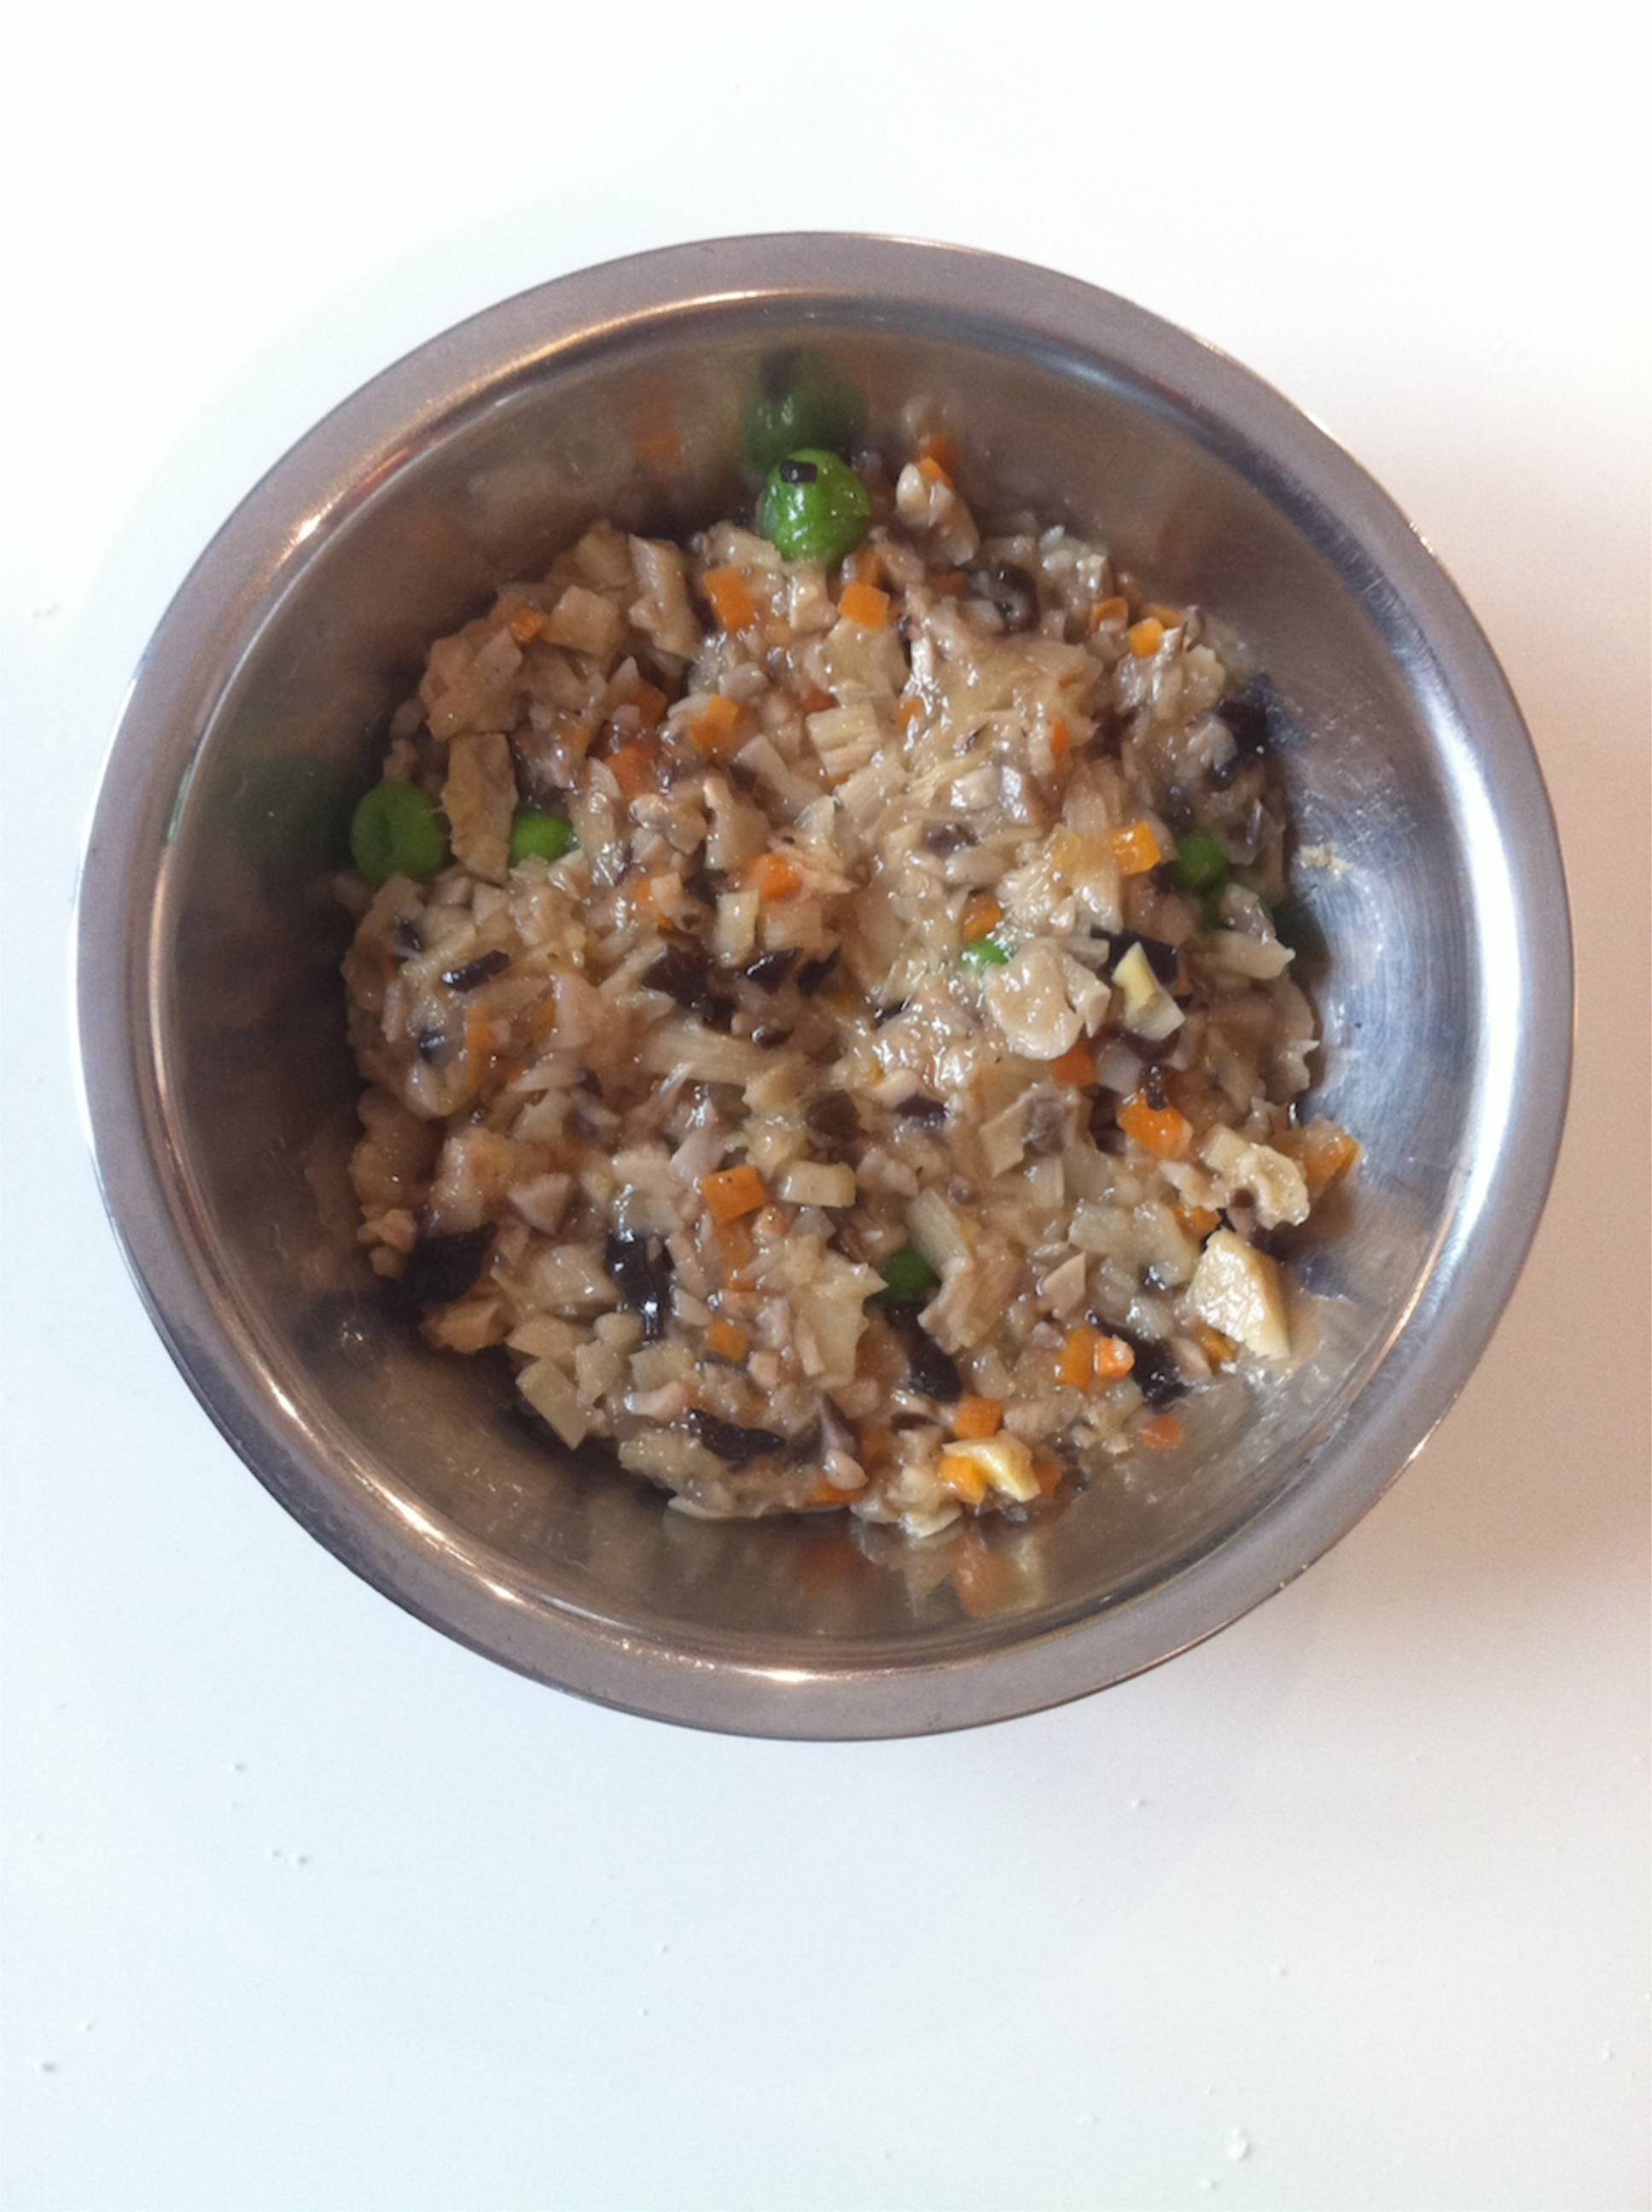 The vegetarian filling ready to use